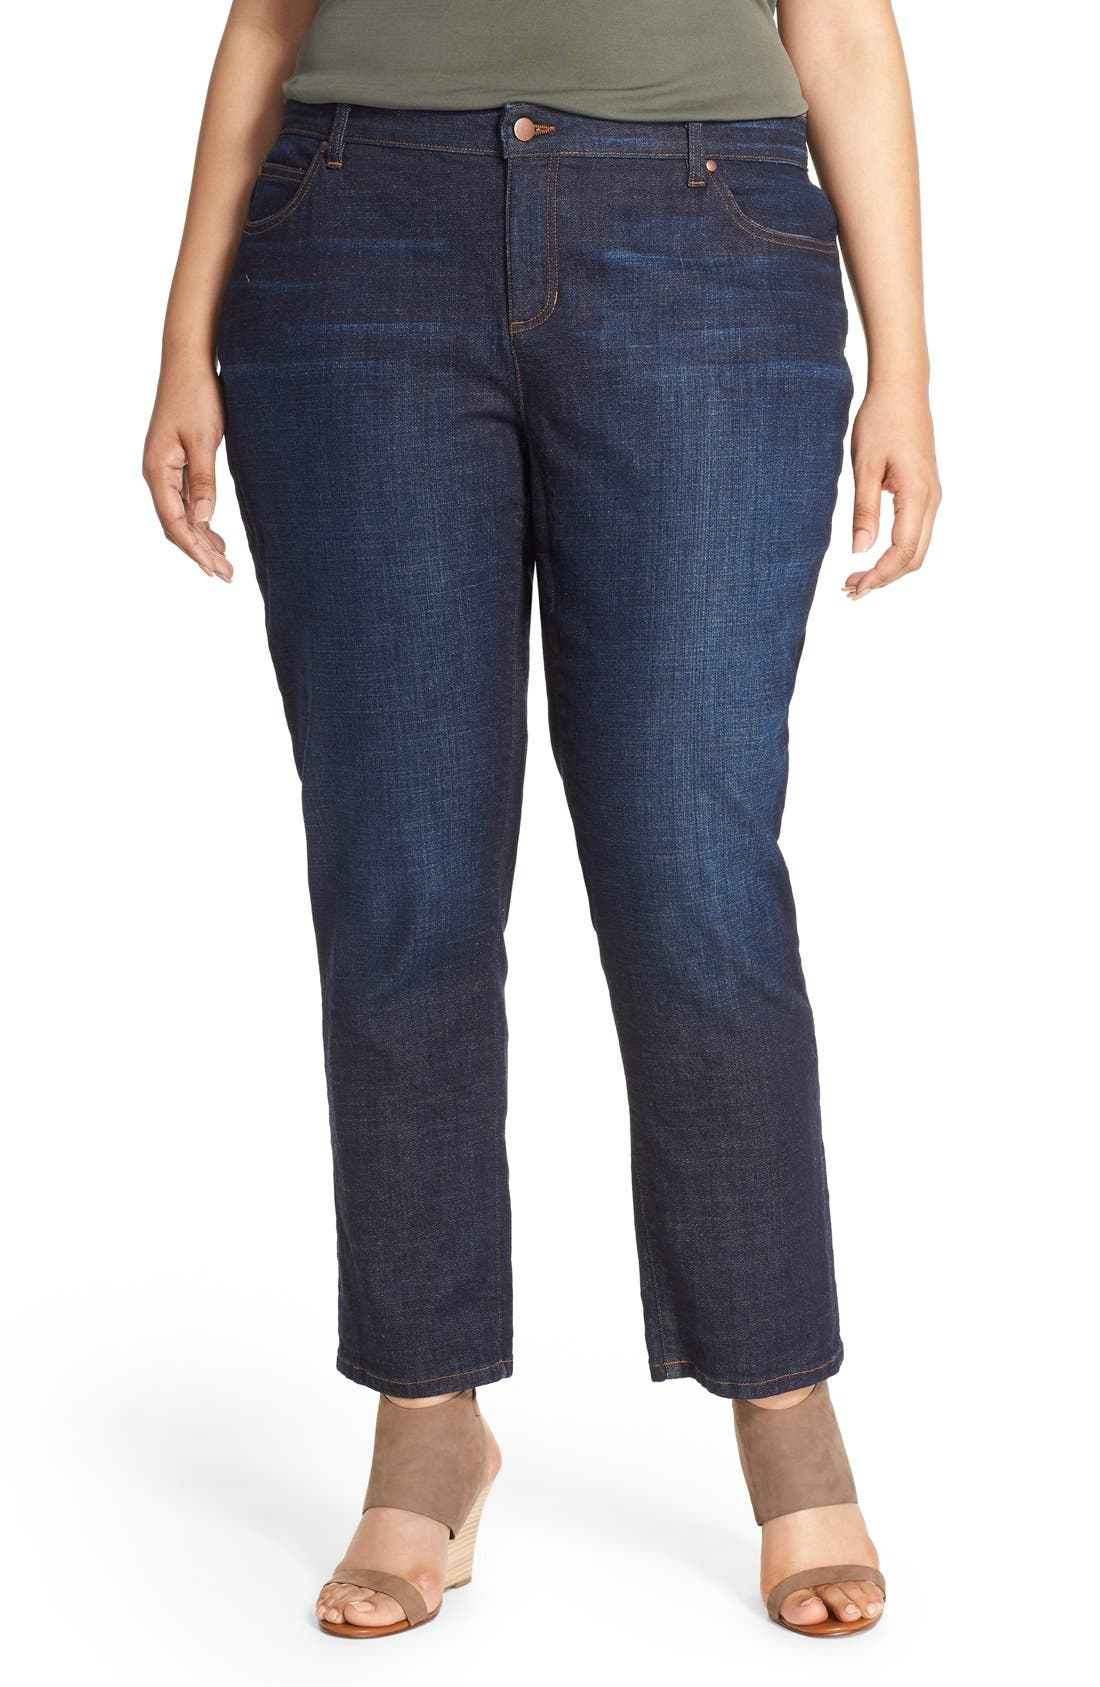 Alternate Image 1 Selected - Eileen Fisher Straight Leg Crop Jeans (Plus Size)